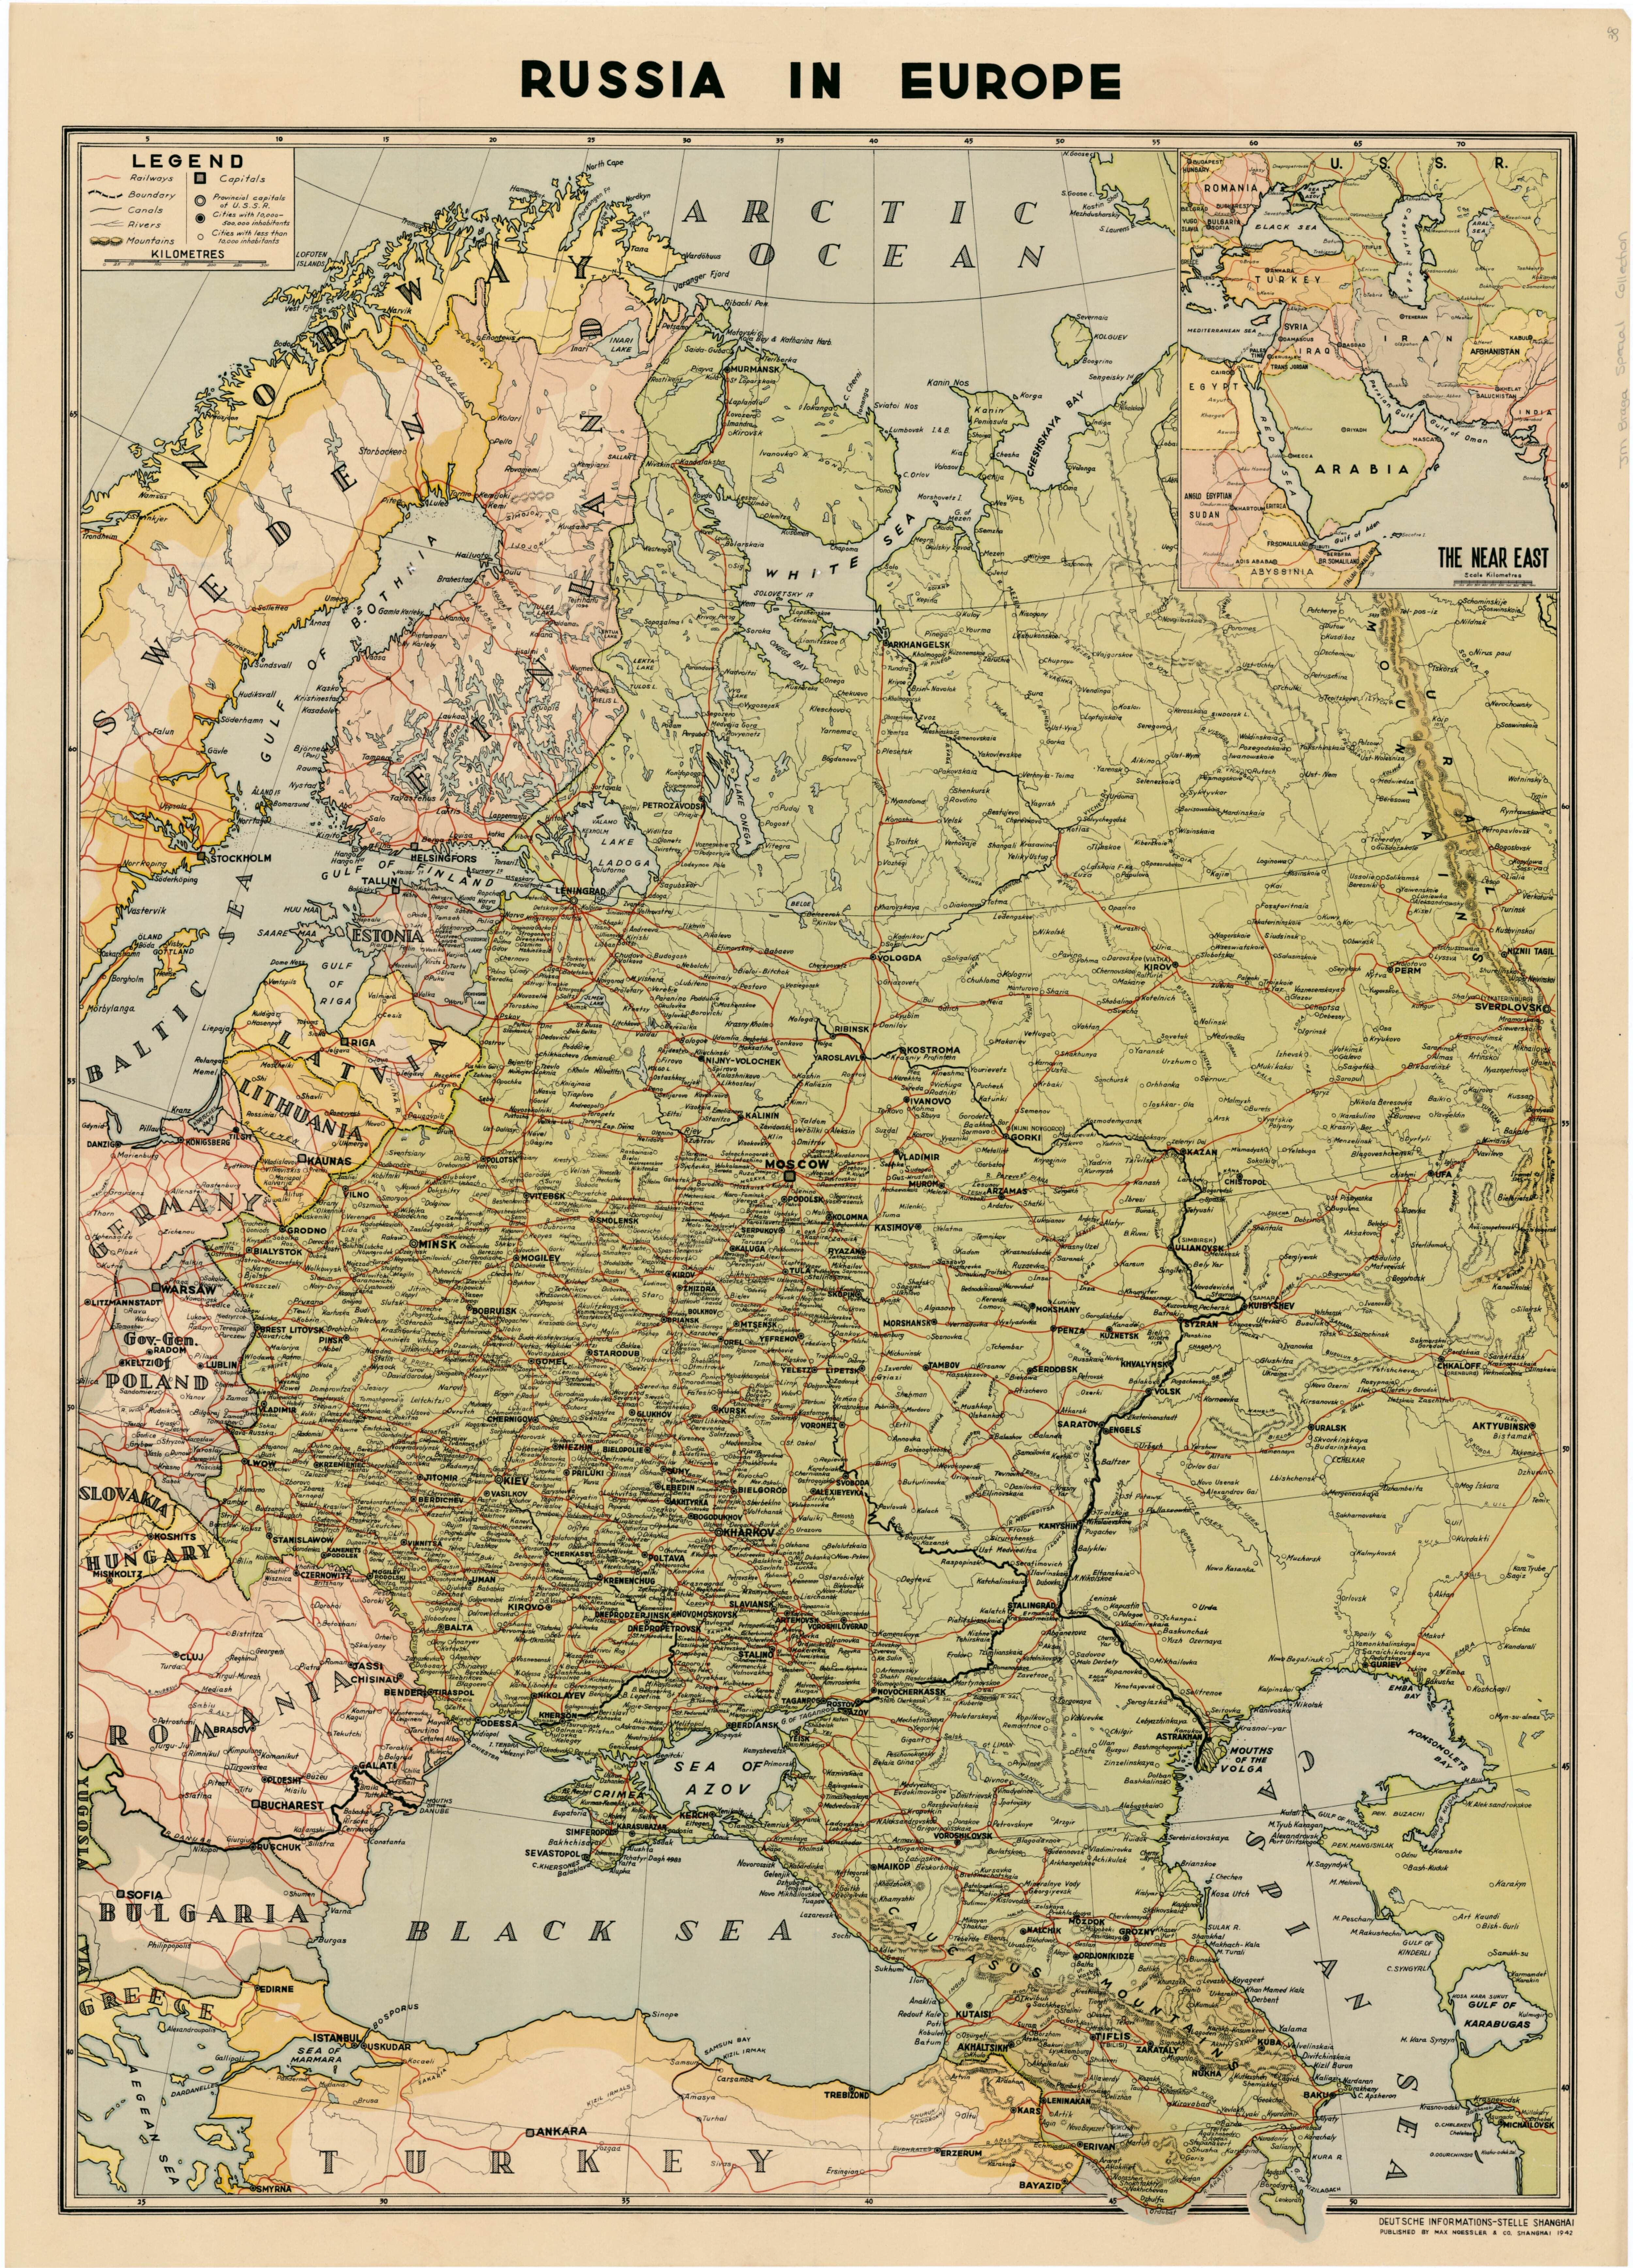 Russia in Europe (1941) | mapmania | Pinterest | Russia, Europe and Map